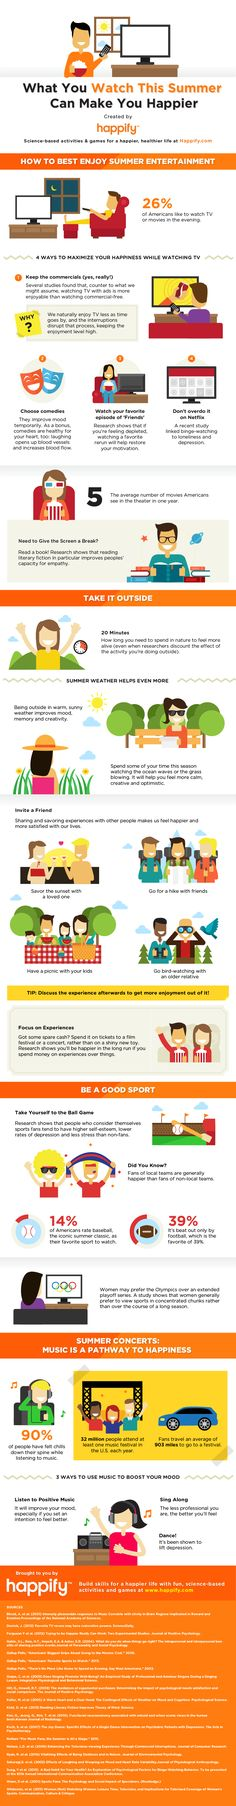 INFOGRAPHIC: What You Watch This Summer Can Make You Happier